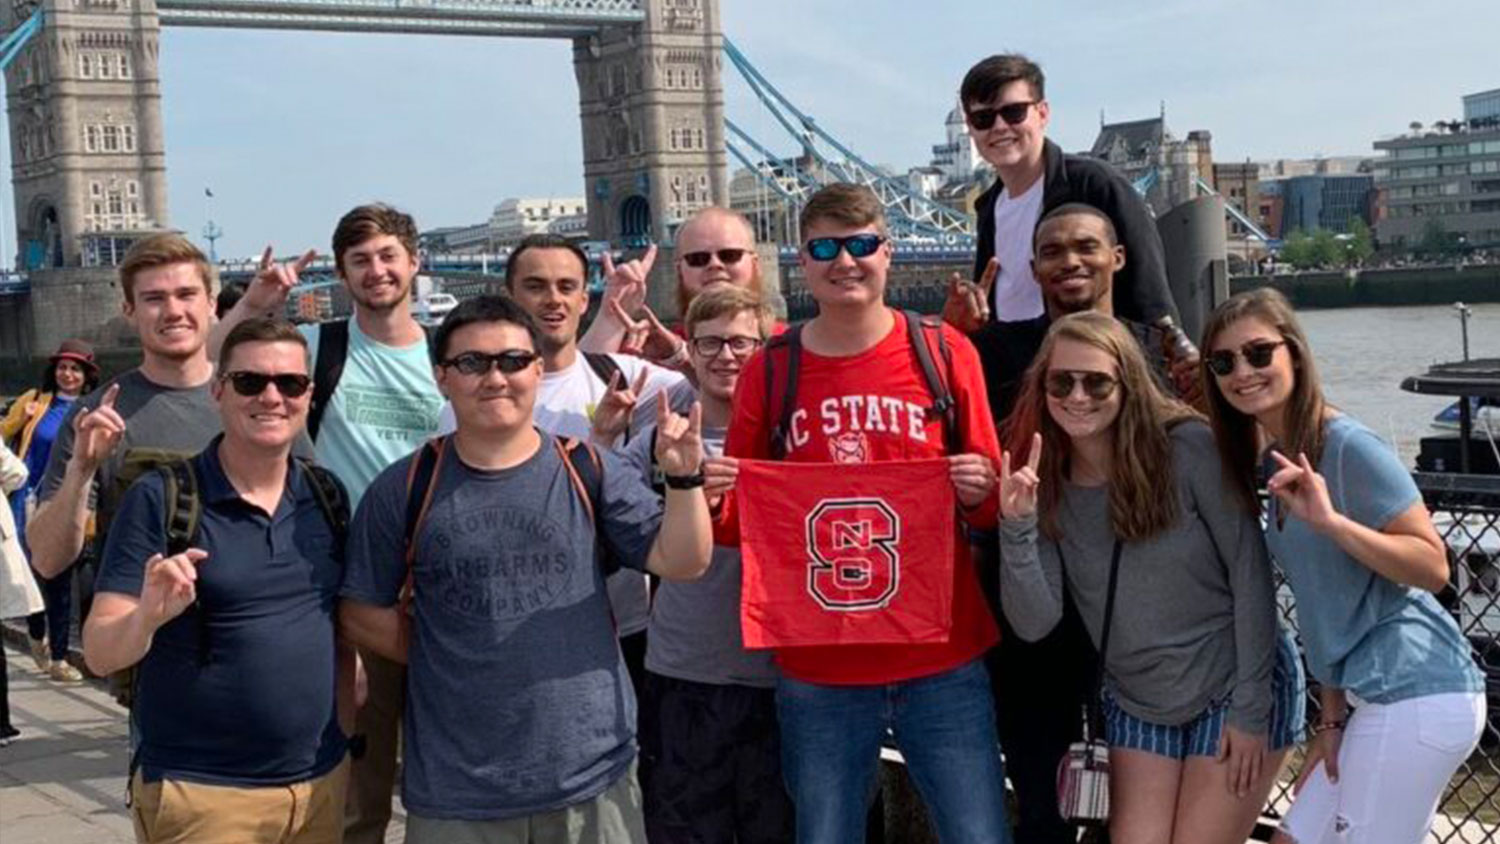 PRTM study abroad - Parks Recreation Tourism Management Department NC State